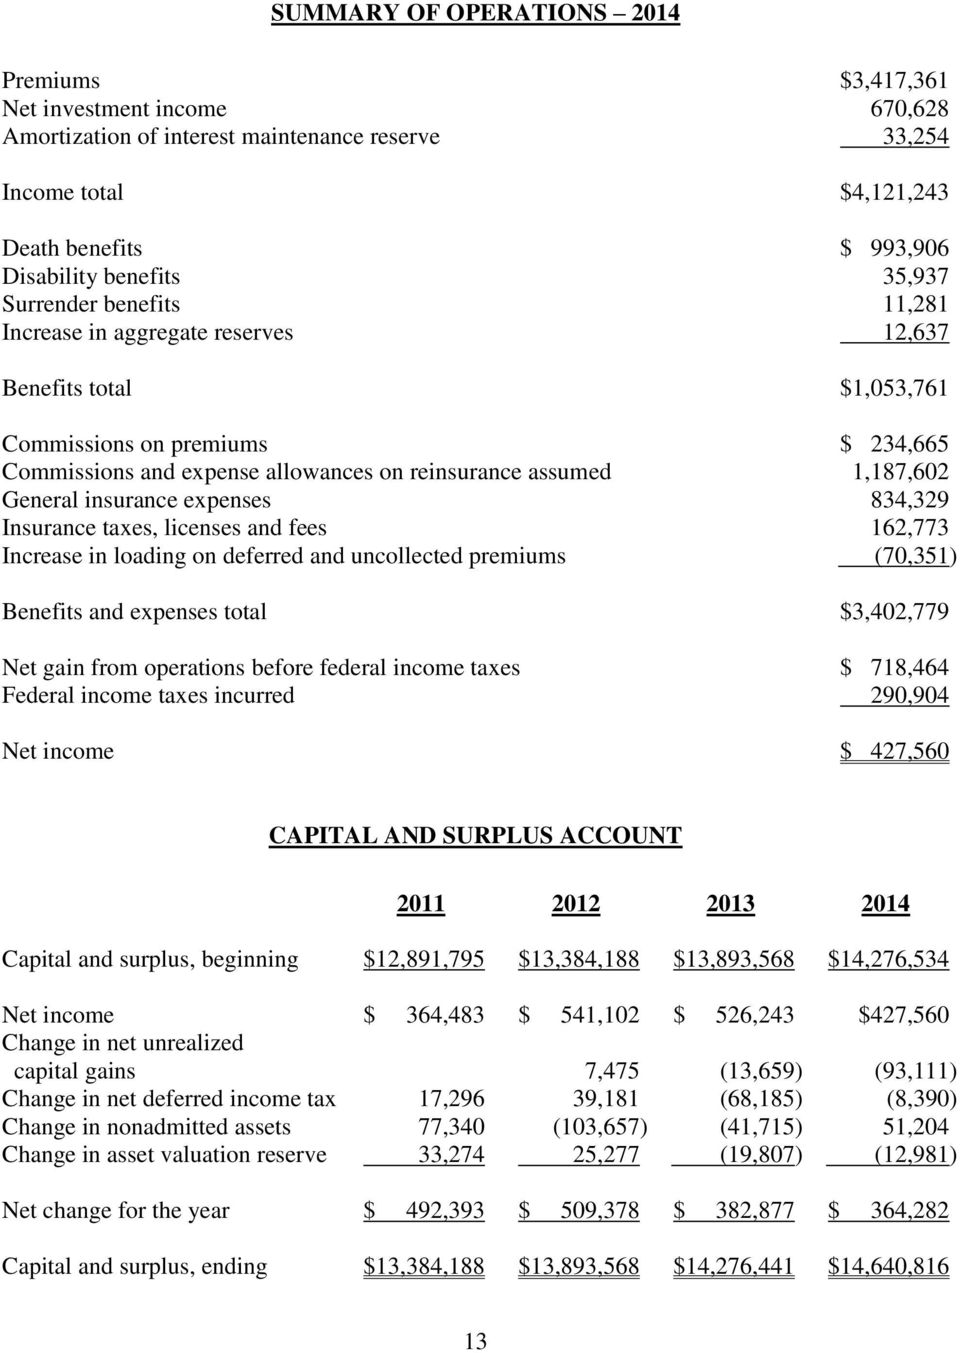 General insurance expenses 834,329 Insurance taxes, licenses and fees 162,773 Increase in loading on deferred and uncollected premiums (70,351) Benefits and expenses total $3,402,779 Net gain from